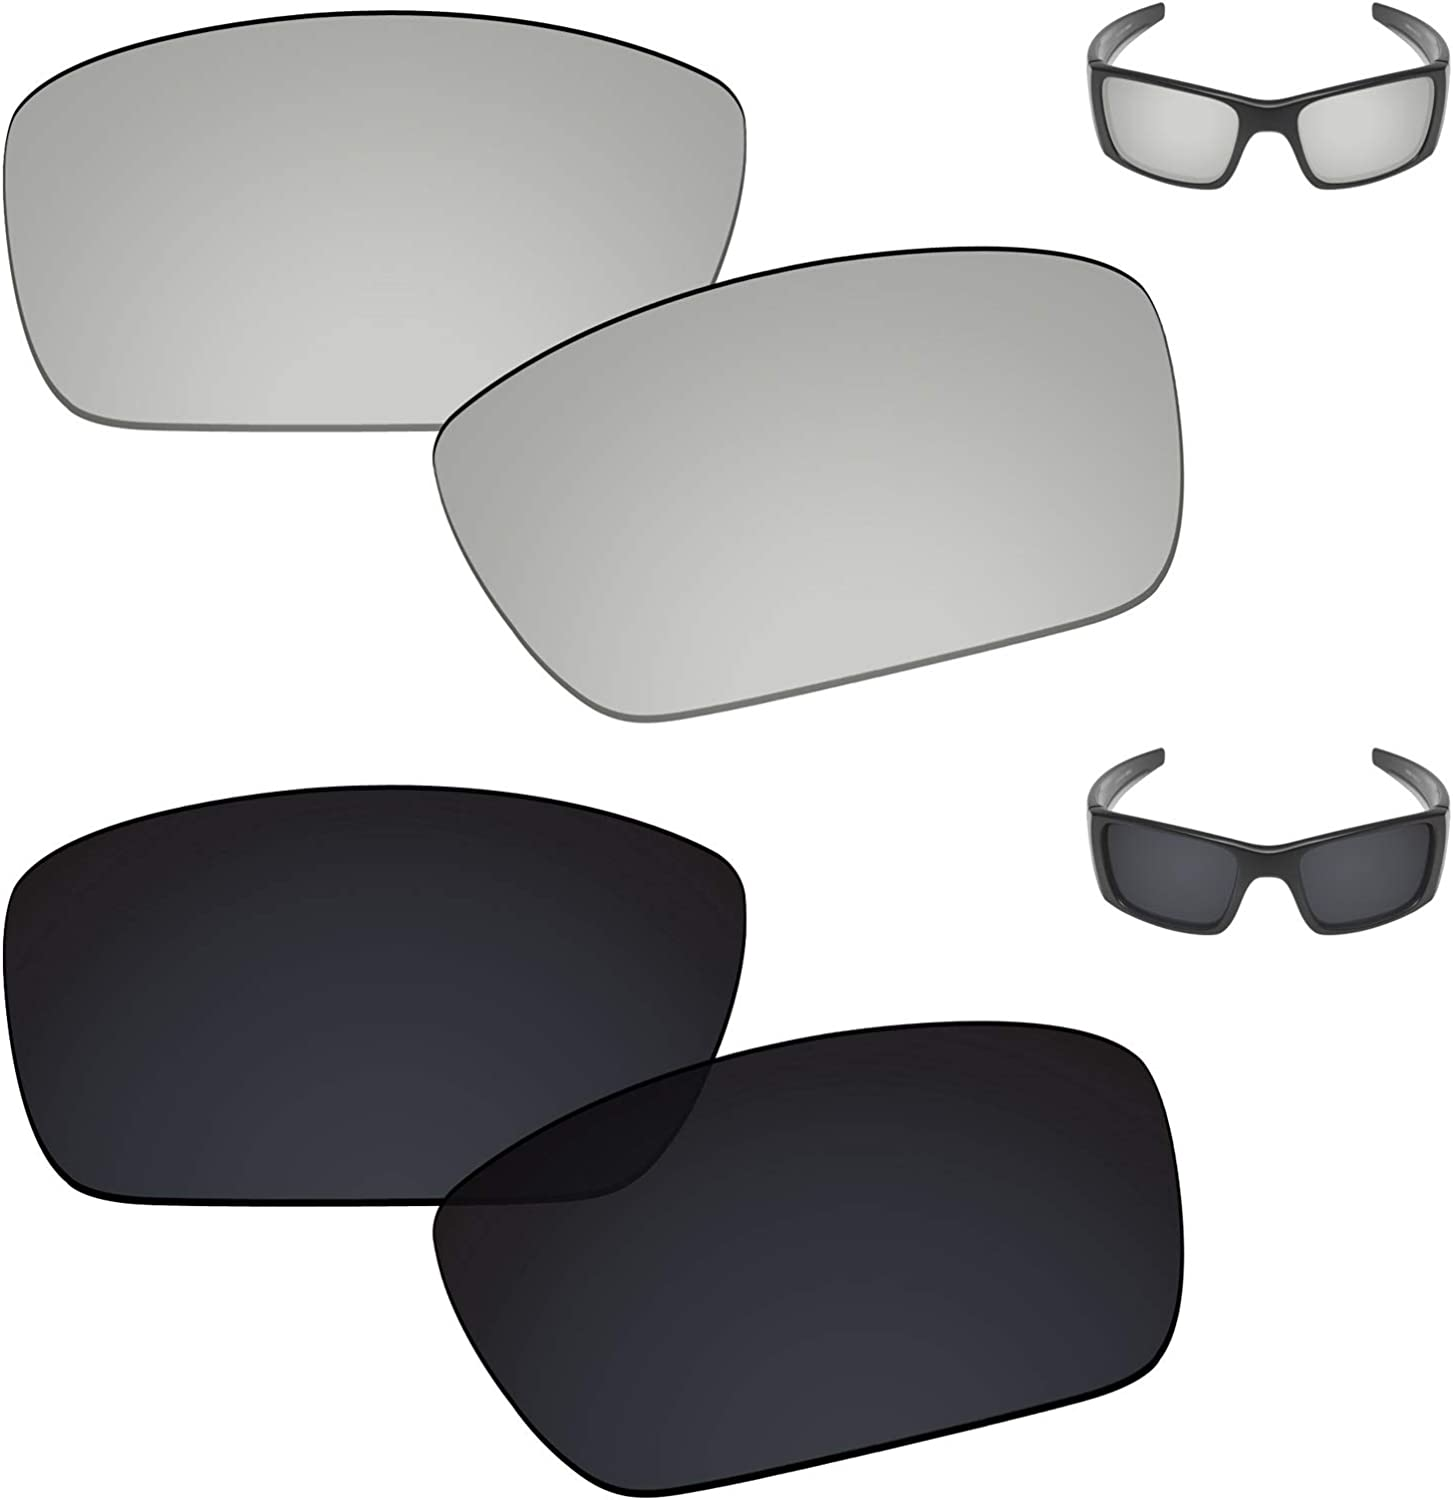 Galvanic Replacement Lenses for Oakley Sunglass Max 88% OFF OO9096 Fuel Cell Outlet ☆ Free Shipping